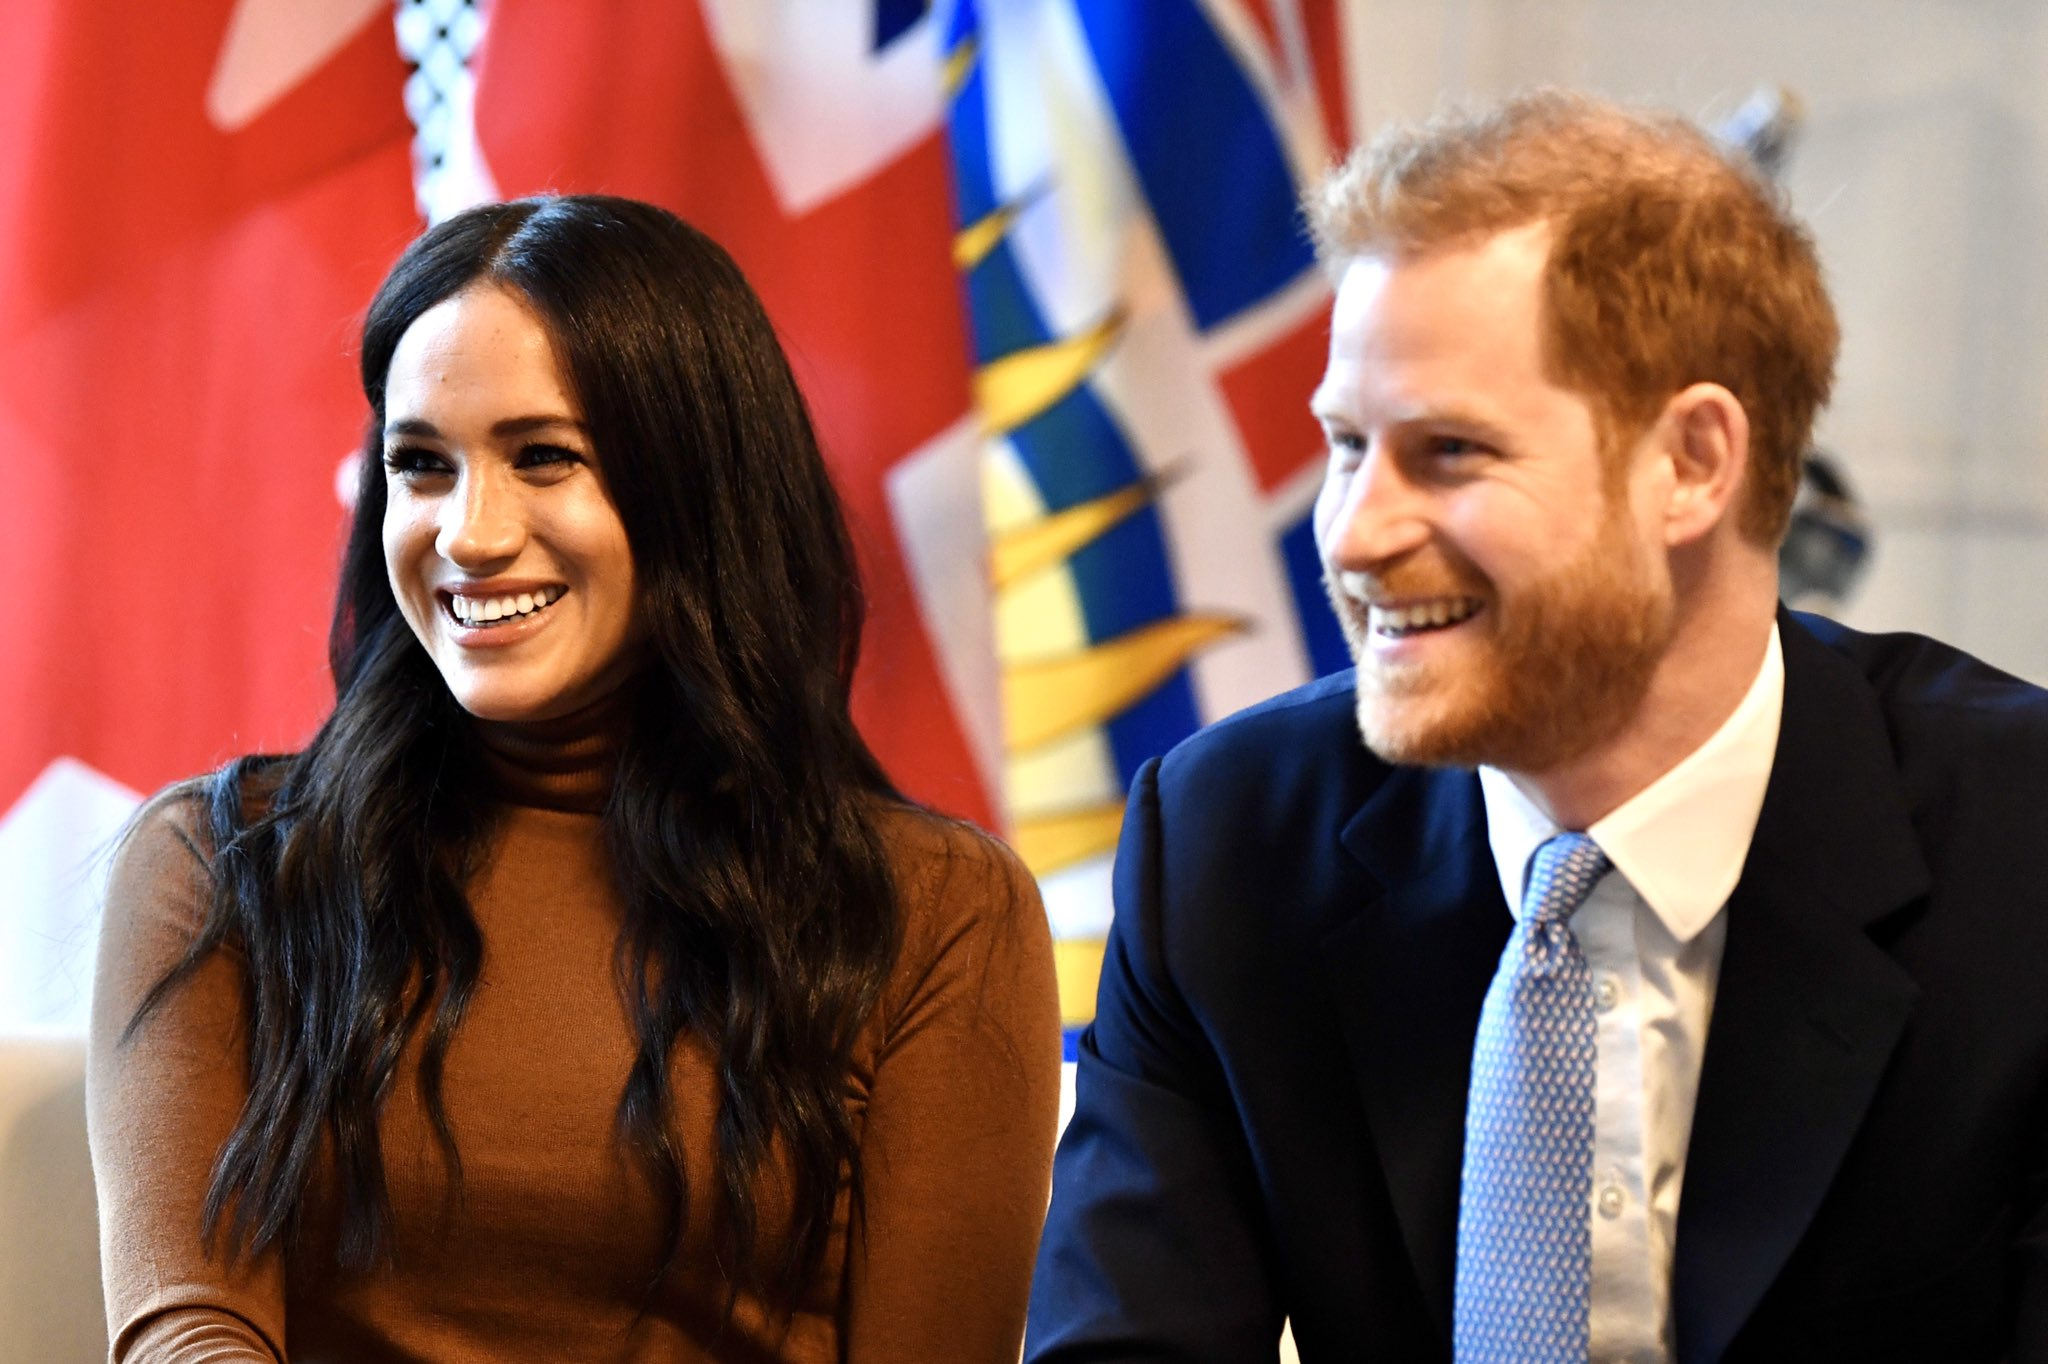 The Duke an Duchess of Sussex, Prince Harry and Meghan last week announced their decision to step back from royal duties, leaving the Royal Family in shock. Photo courtesy: Twitter/@RoyalFamily